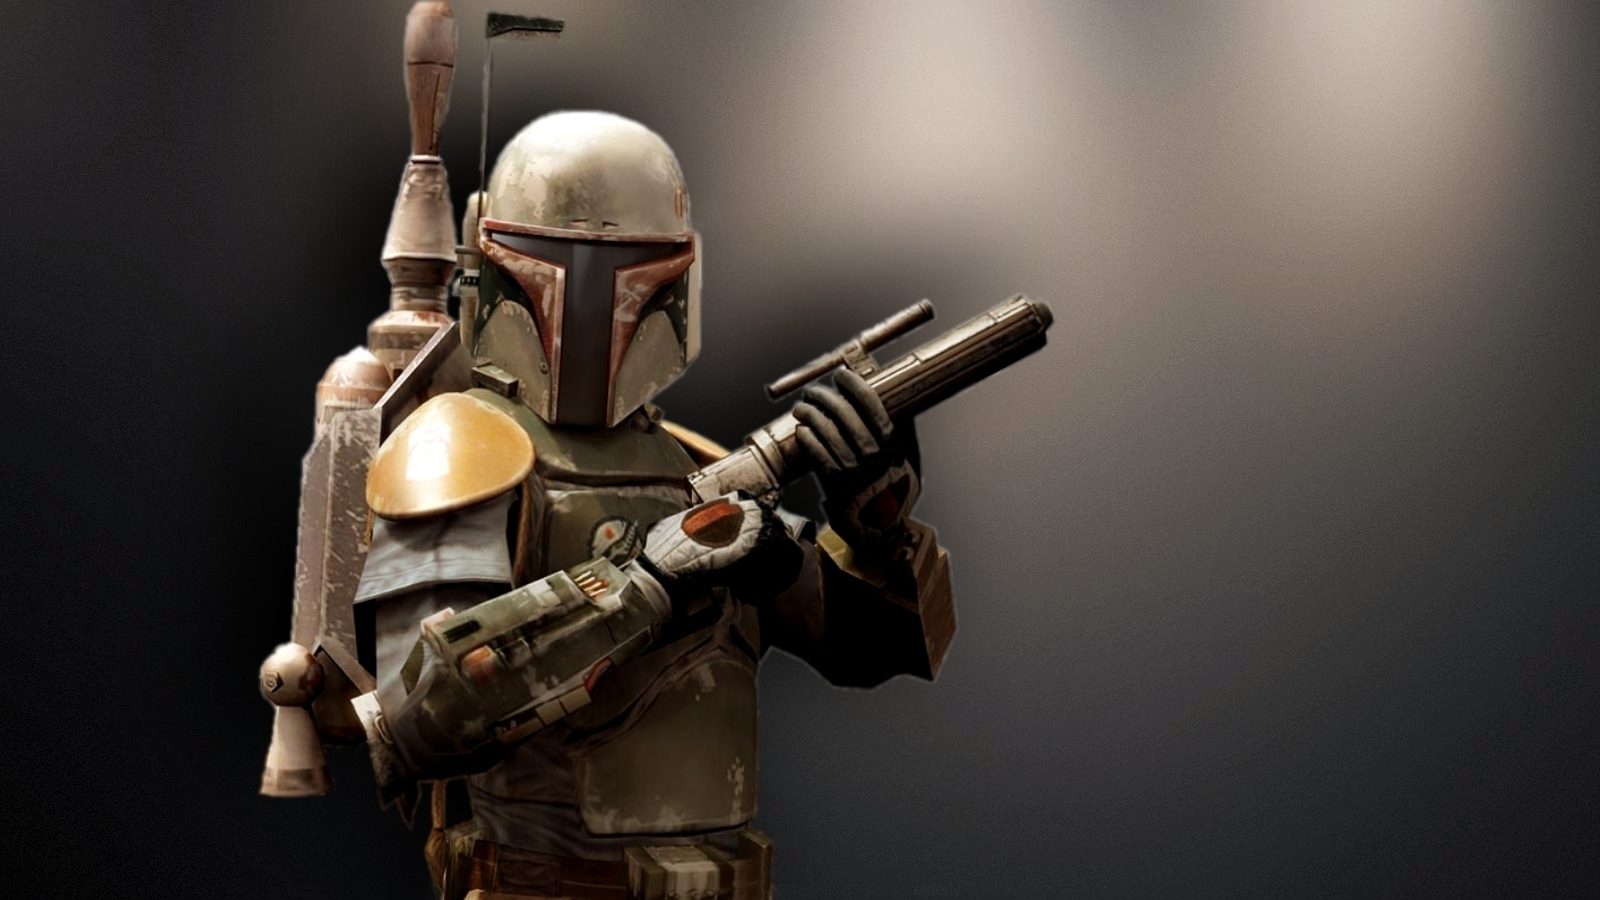 Boba Fett Wallpaper Star Wars by beautyrenderblogspotcom 1600x900